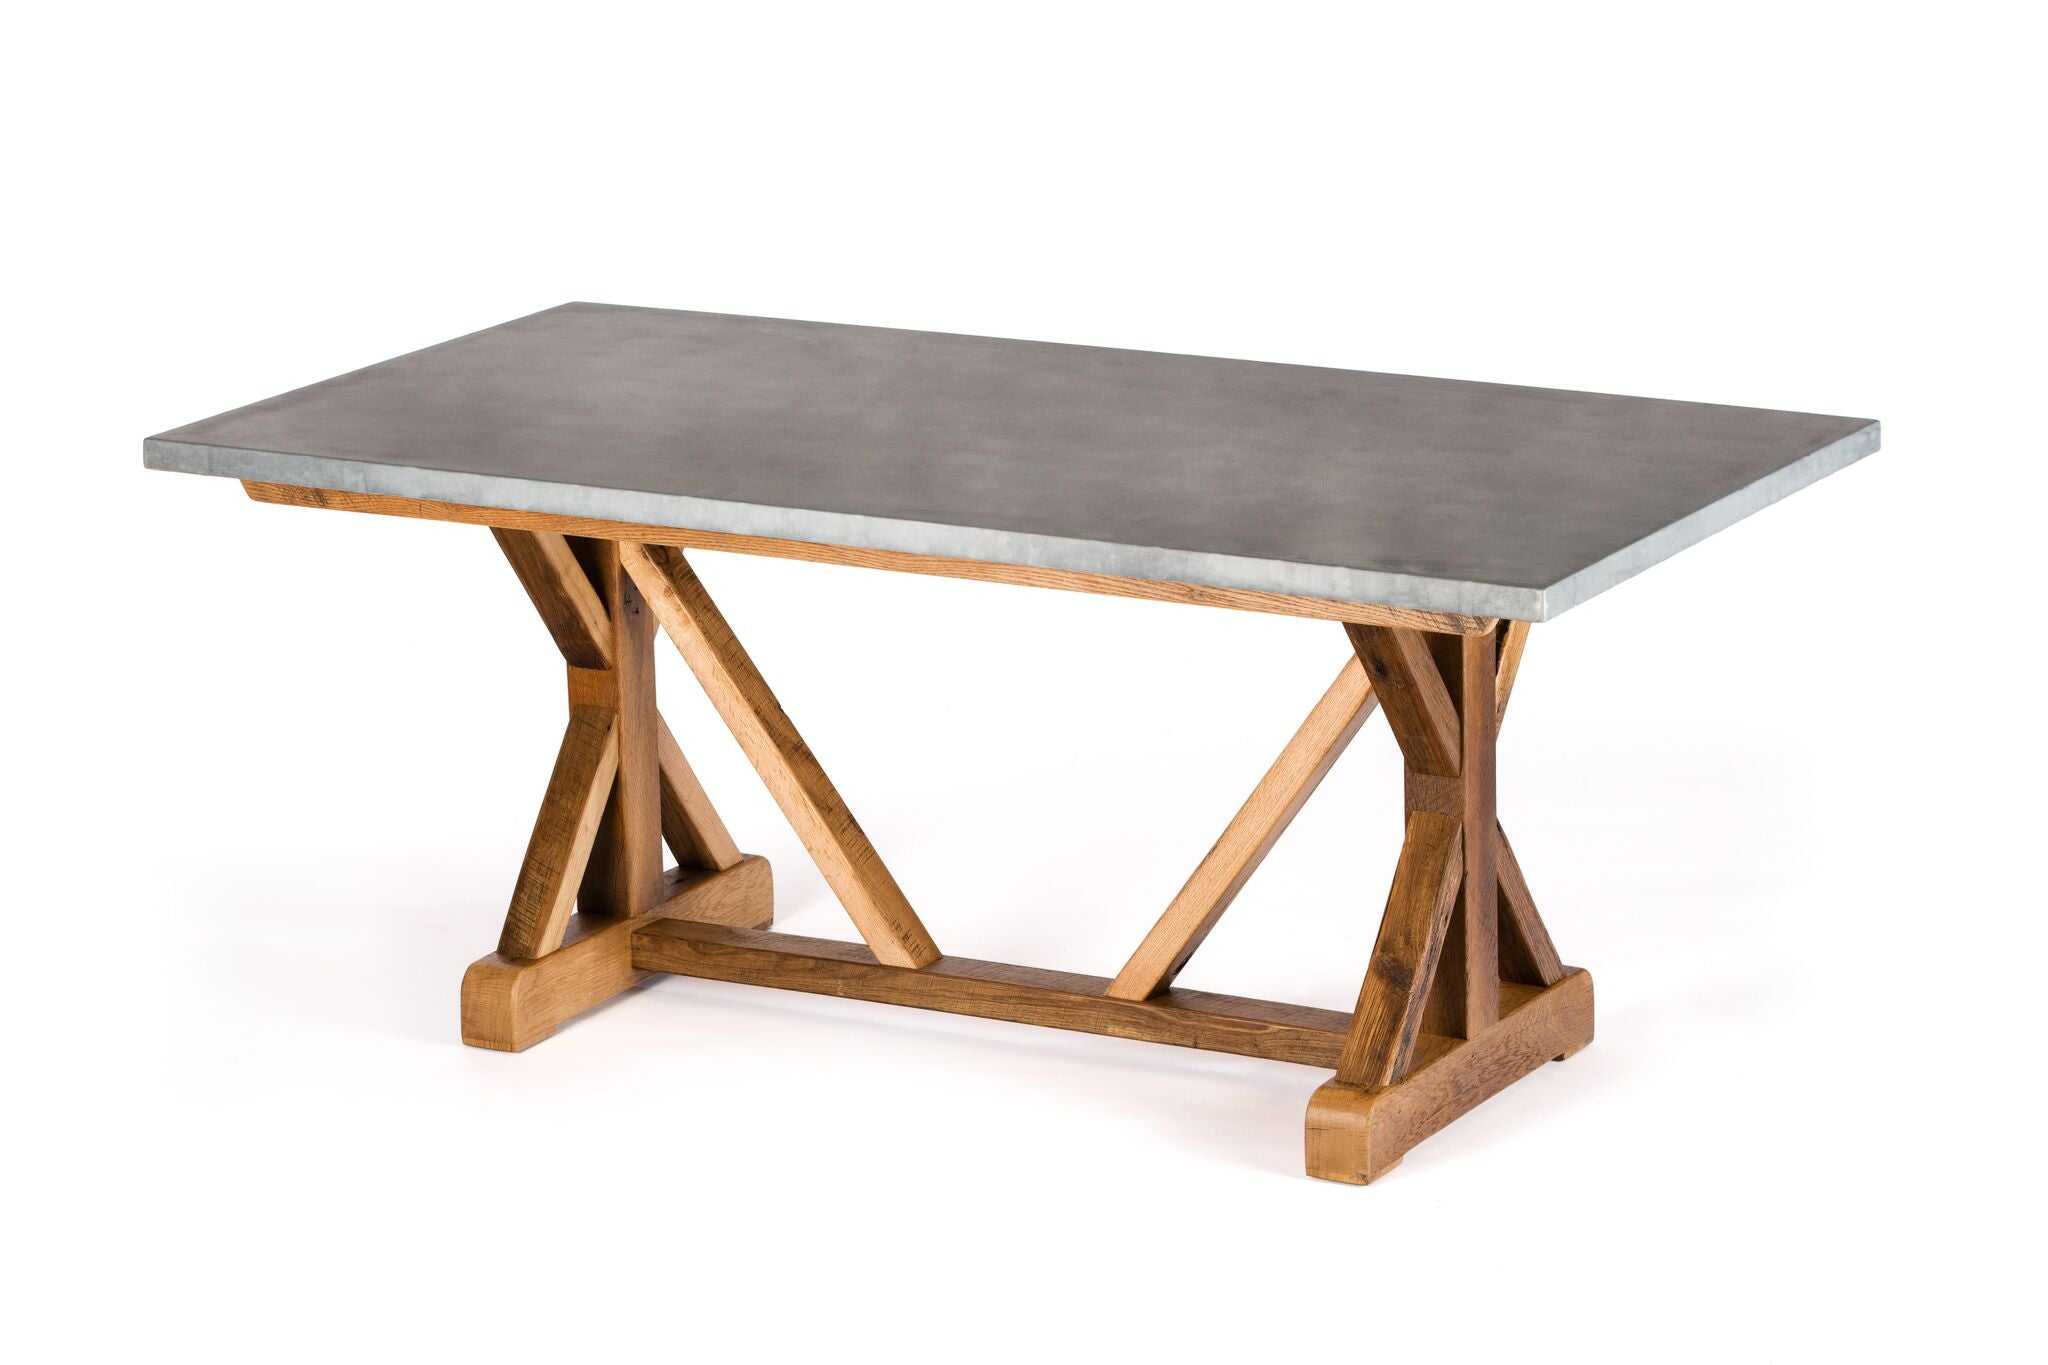 "Zinc Rectangular Table | French Trestle Table | CLASSIC | Weathered Grey on Reclaimed Oak | CUSTOM SIZE 96""L 40""W 30""H 